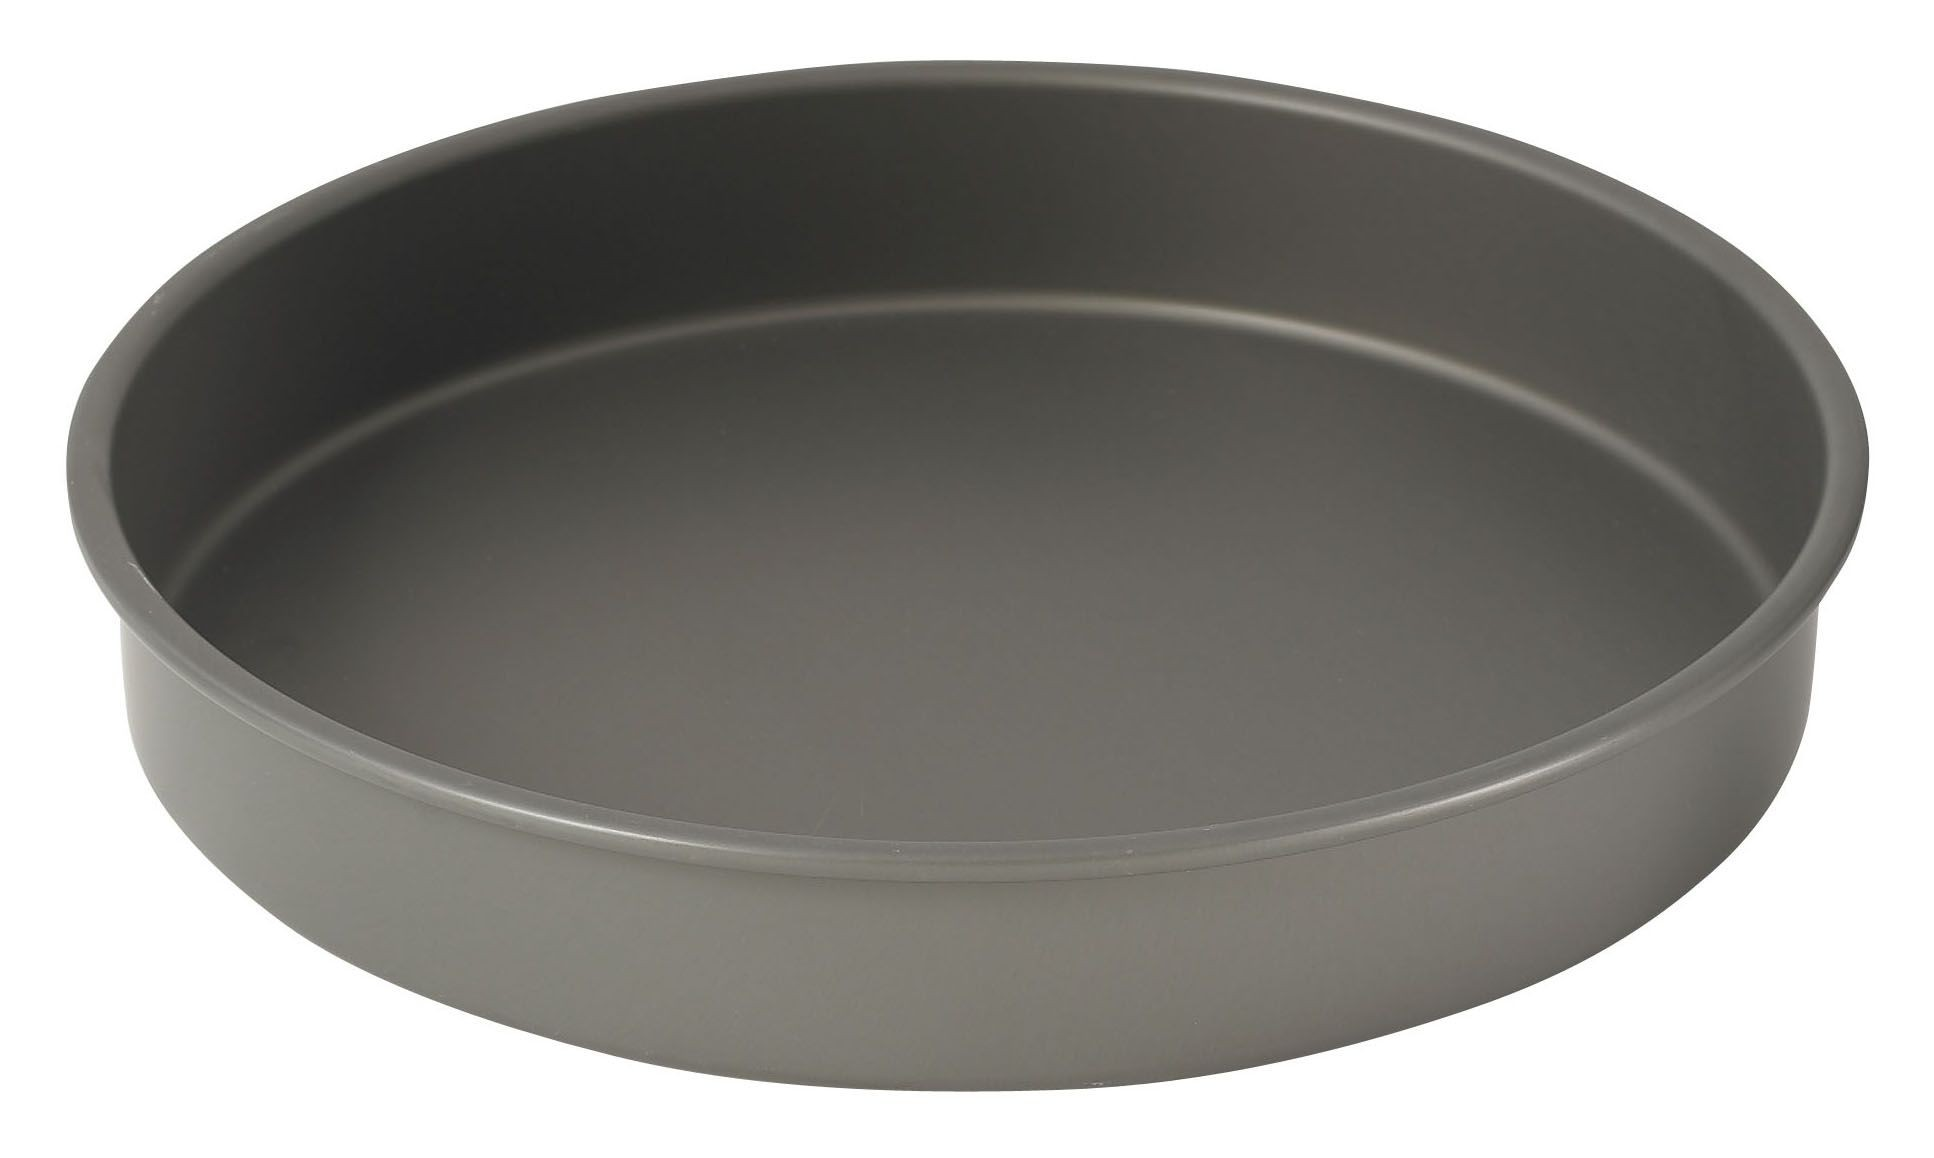 Hard Anodized Alu Cake Pan, 12